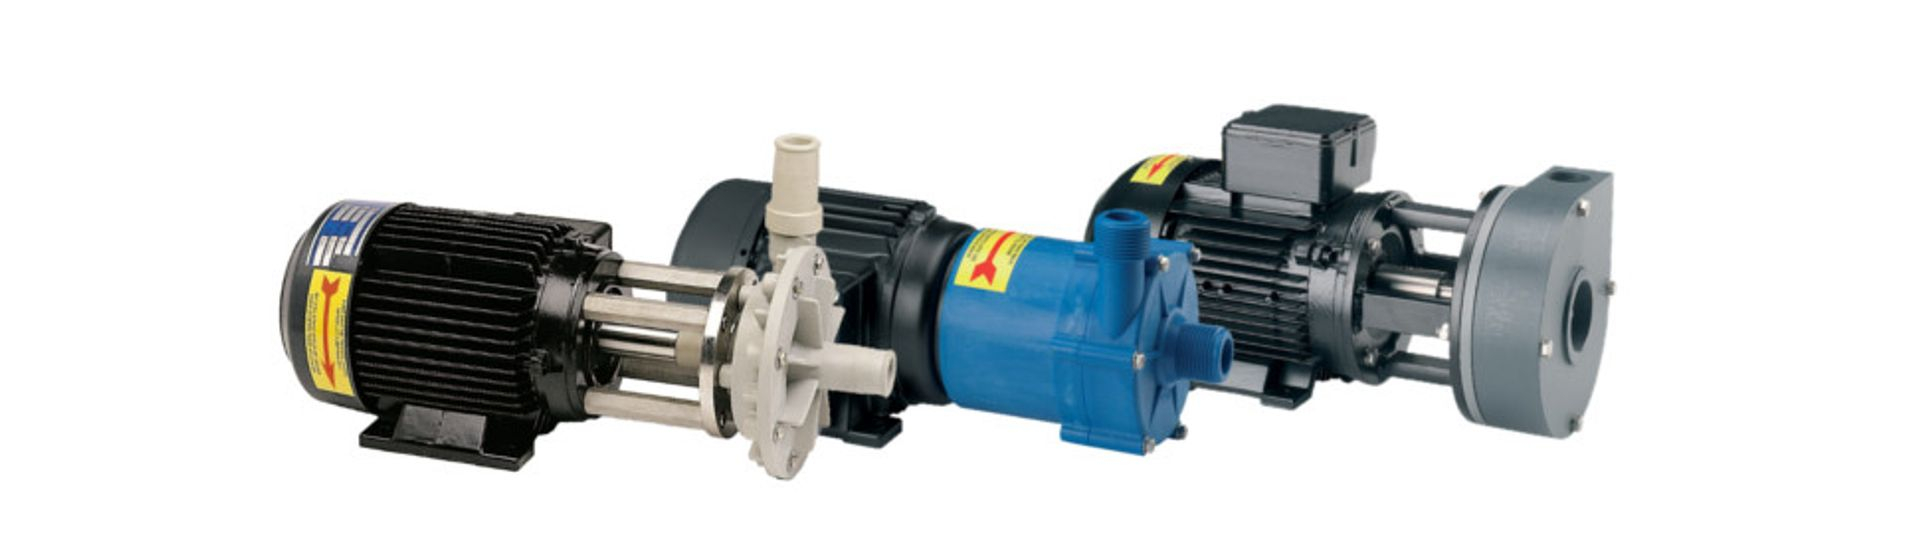 Specialized Mefiag Chemical Pumps